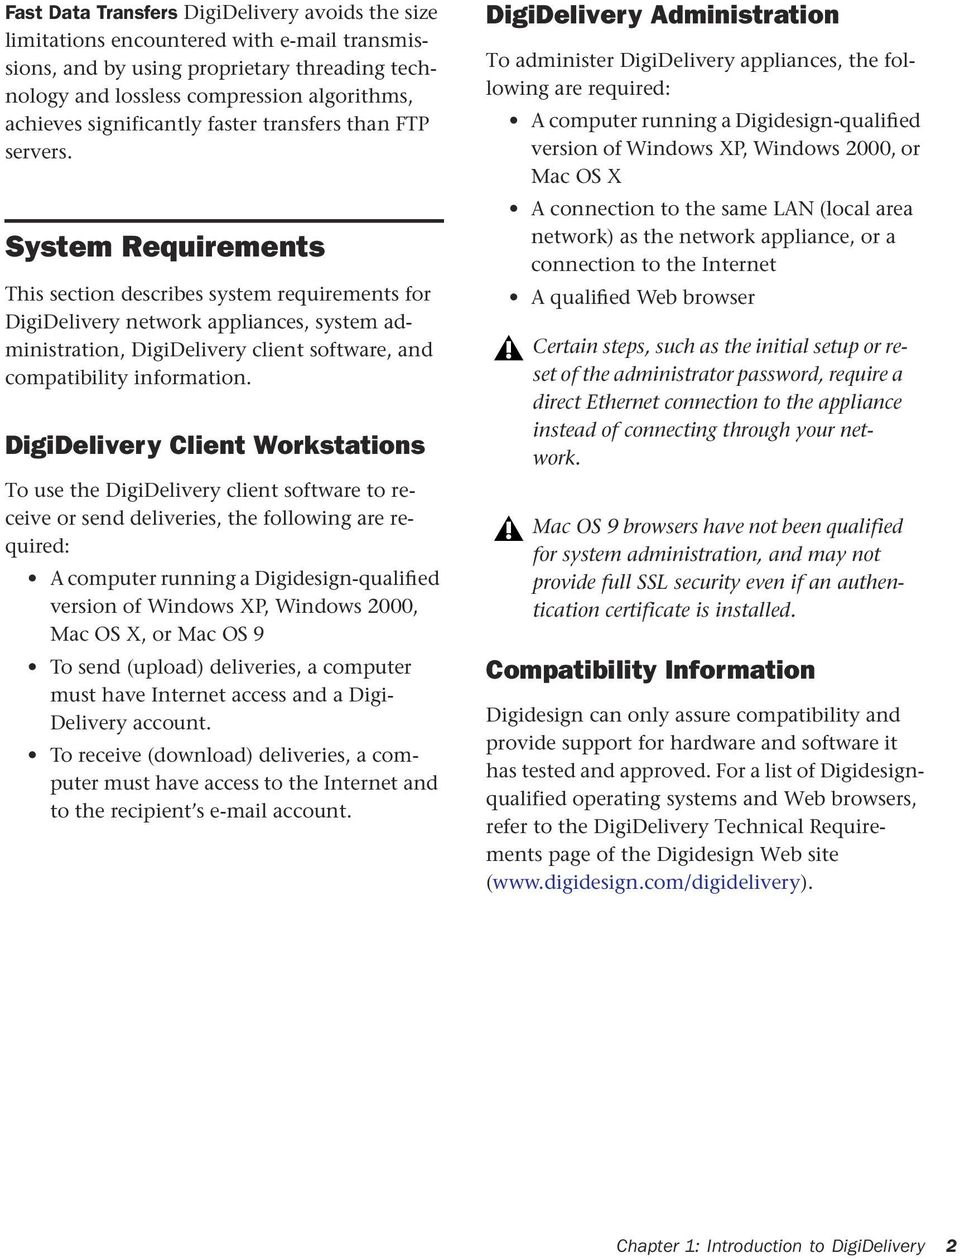 System Requirements This section describes system requirements for DigiDelivery network appliances, system administration, DigiDelivery client software, and compatibility information.